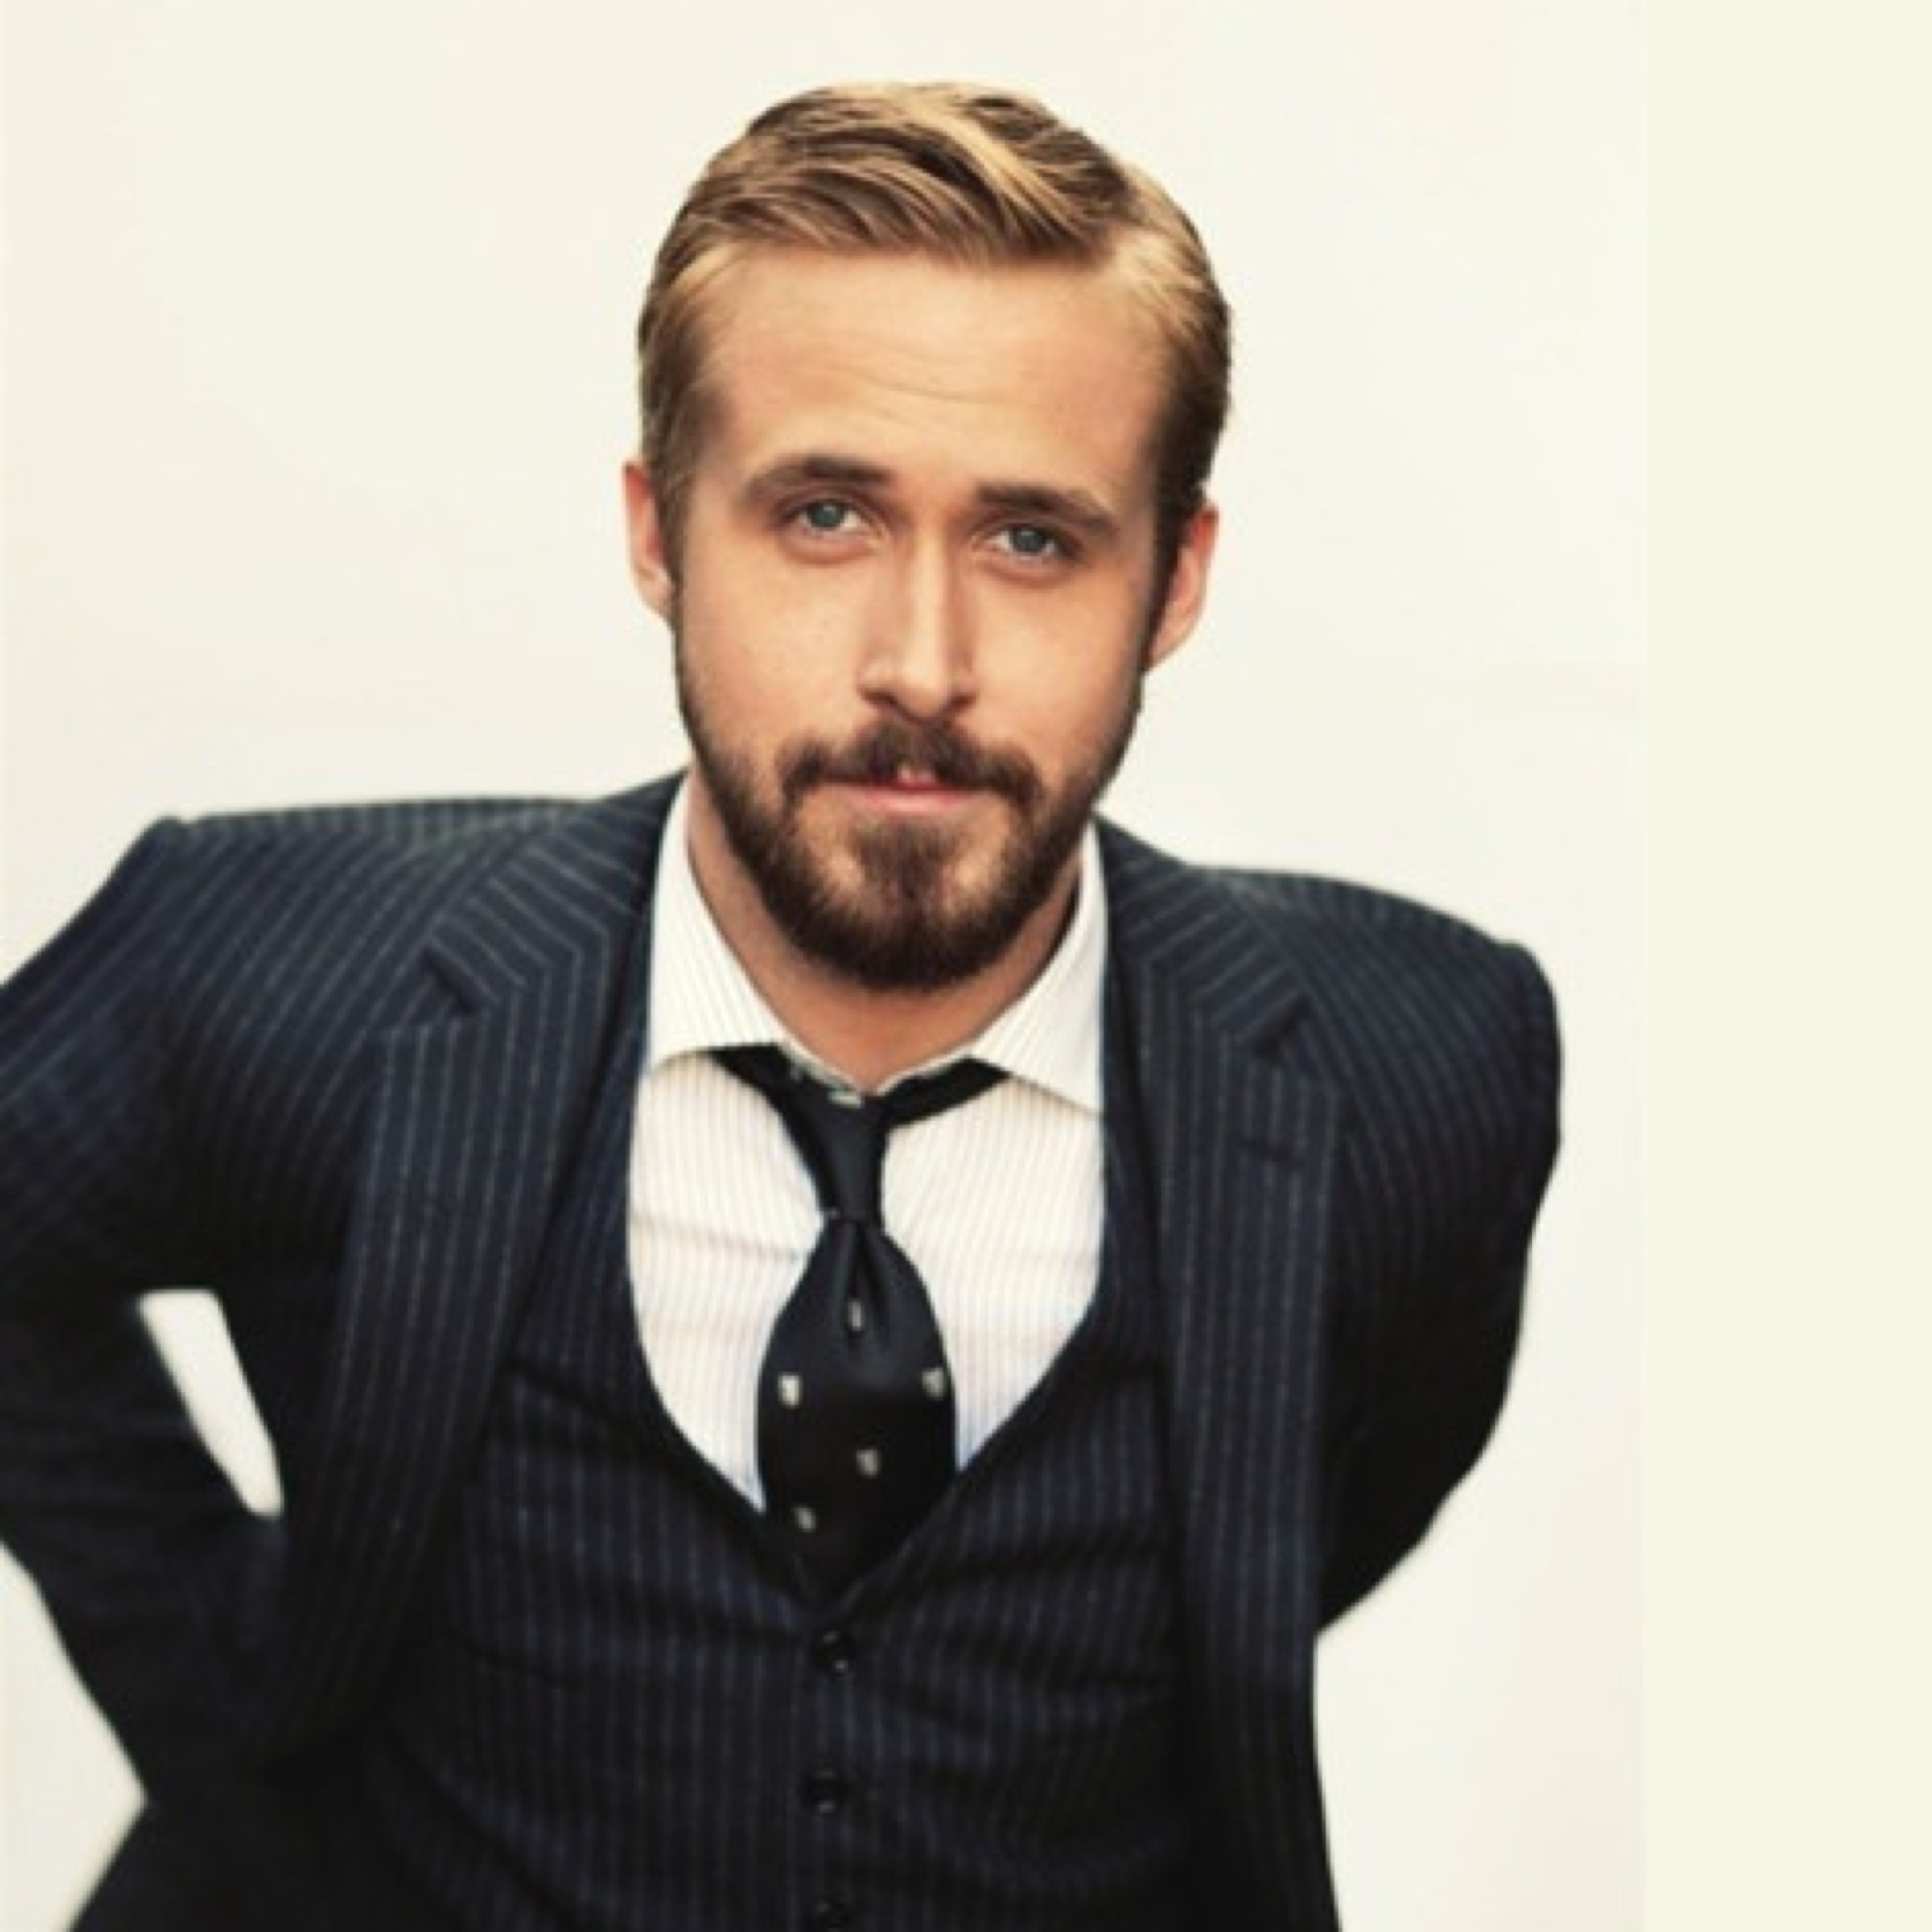 #1 (296 likes) Ryan Gosling (well worth of #1 spot)